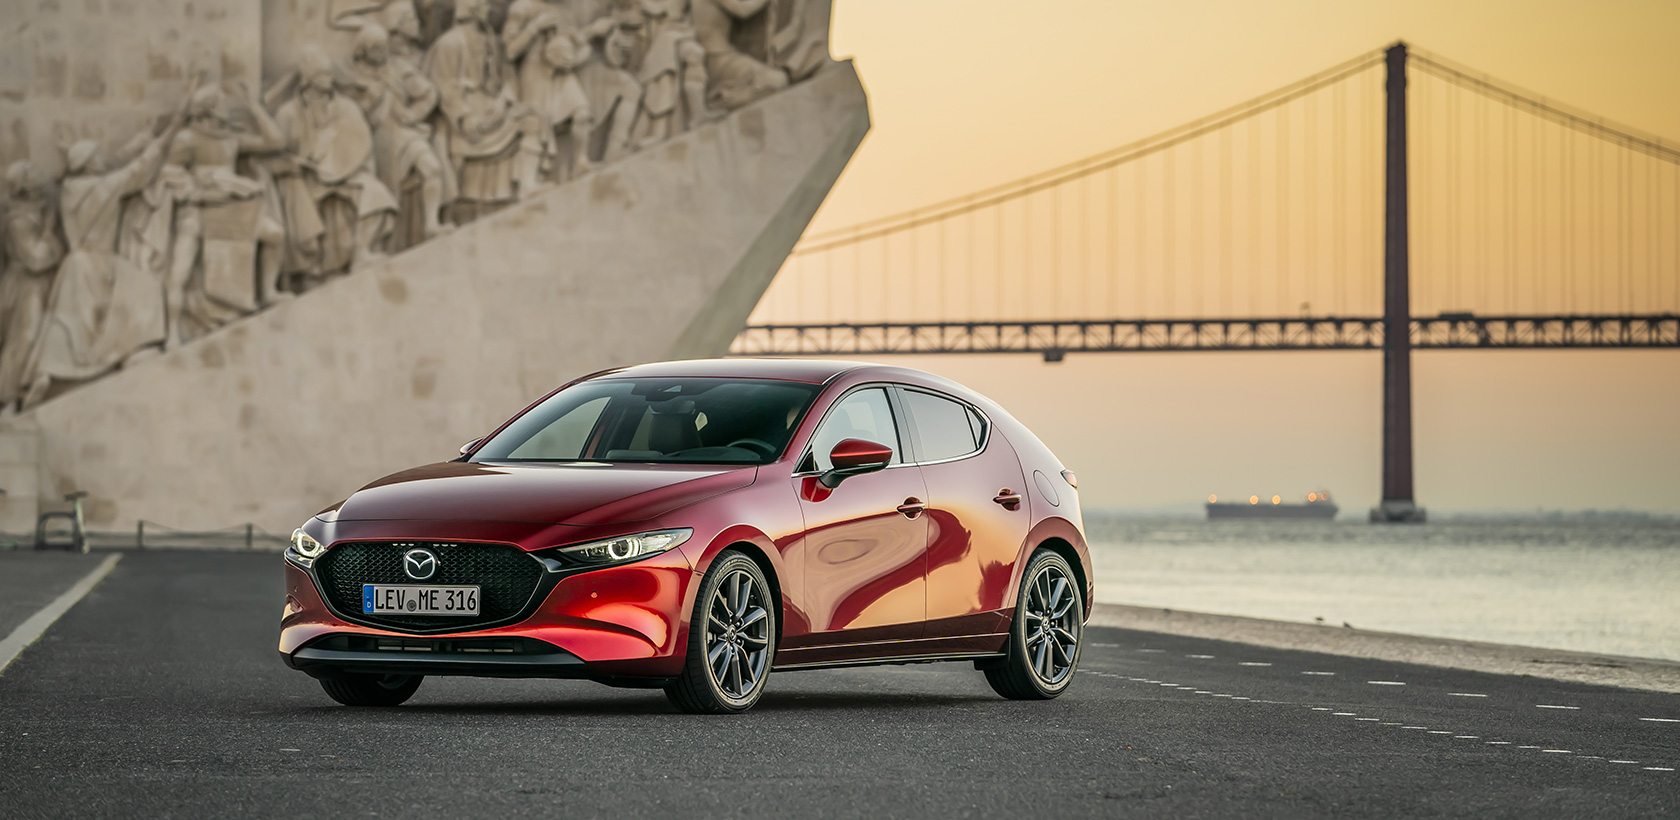 La nouvelle Mazda3 primée au Red Dot Awards 2019